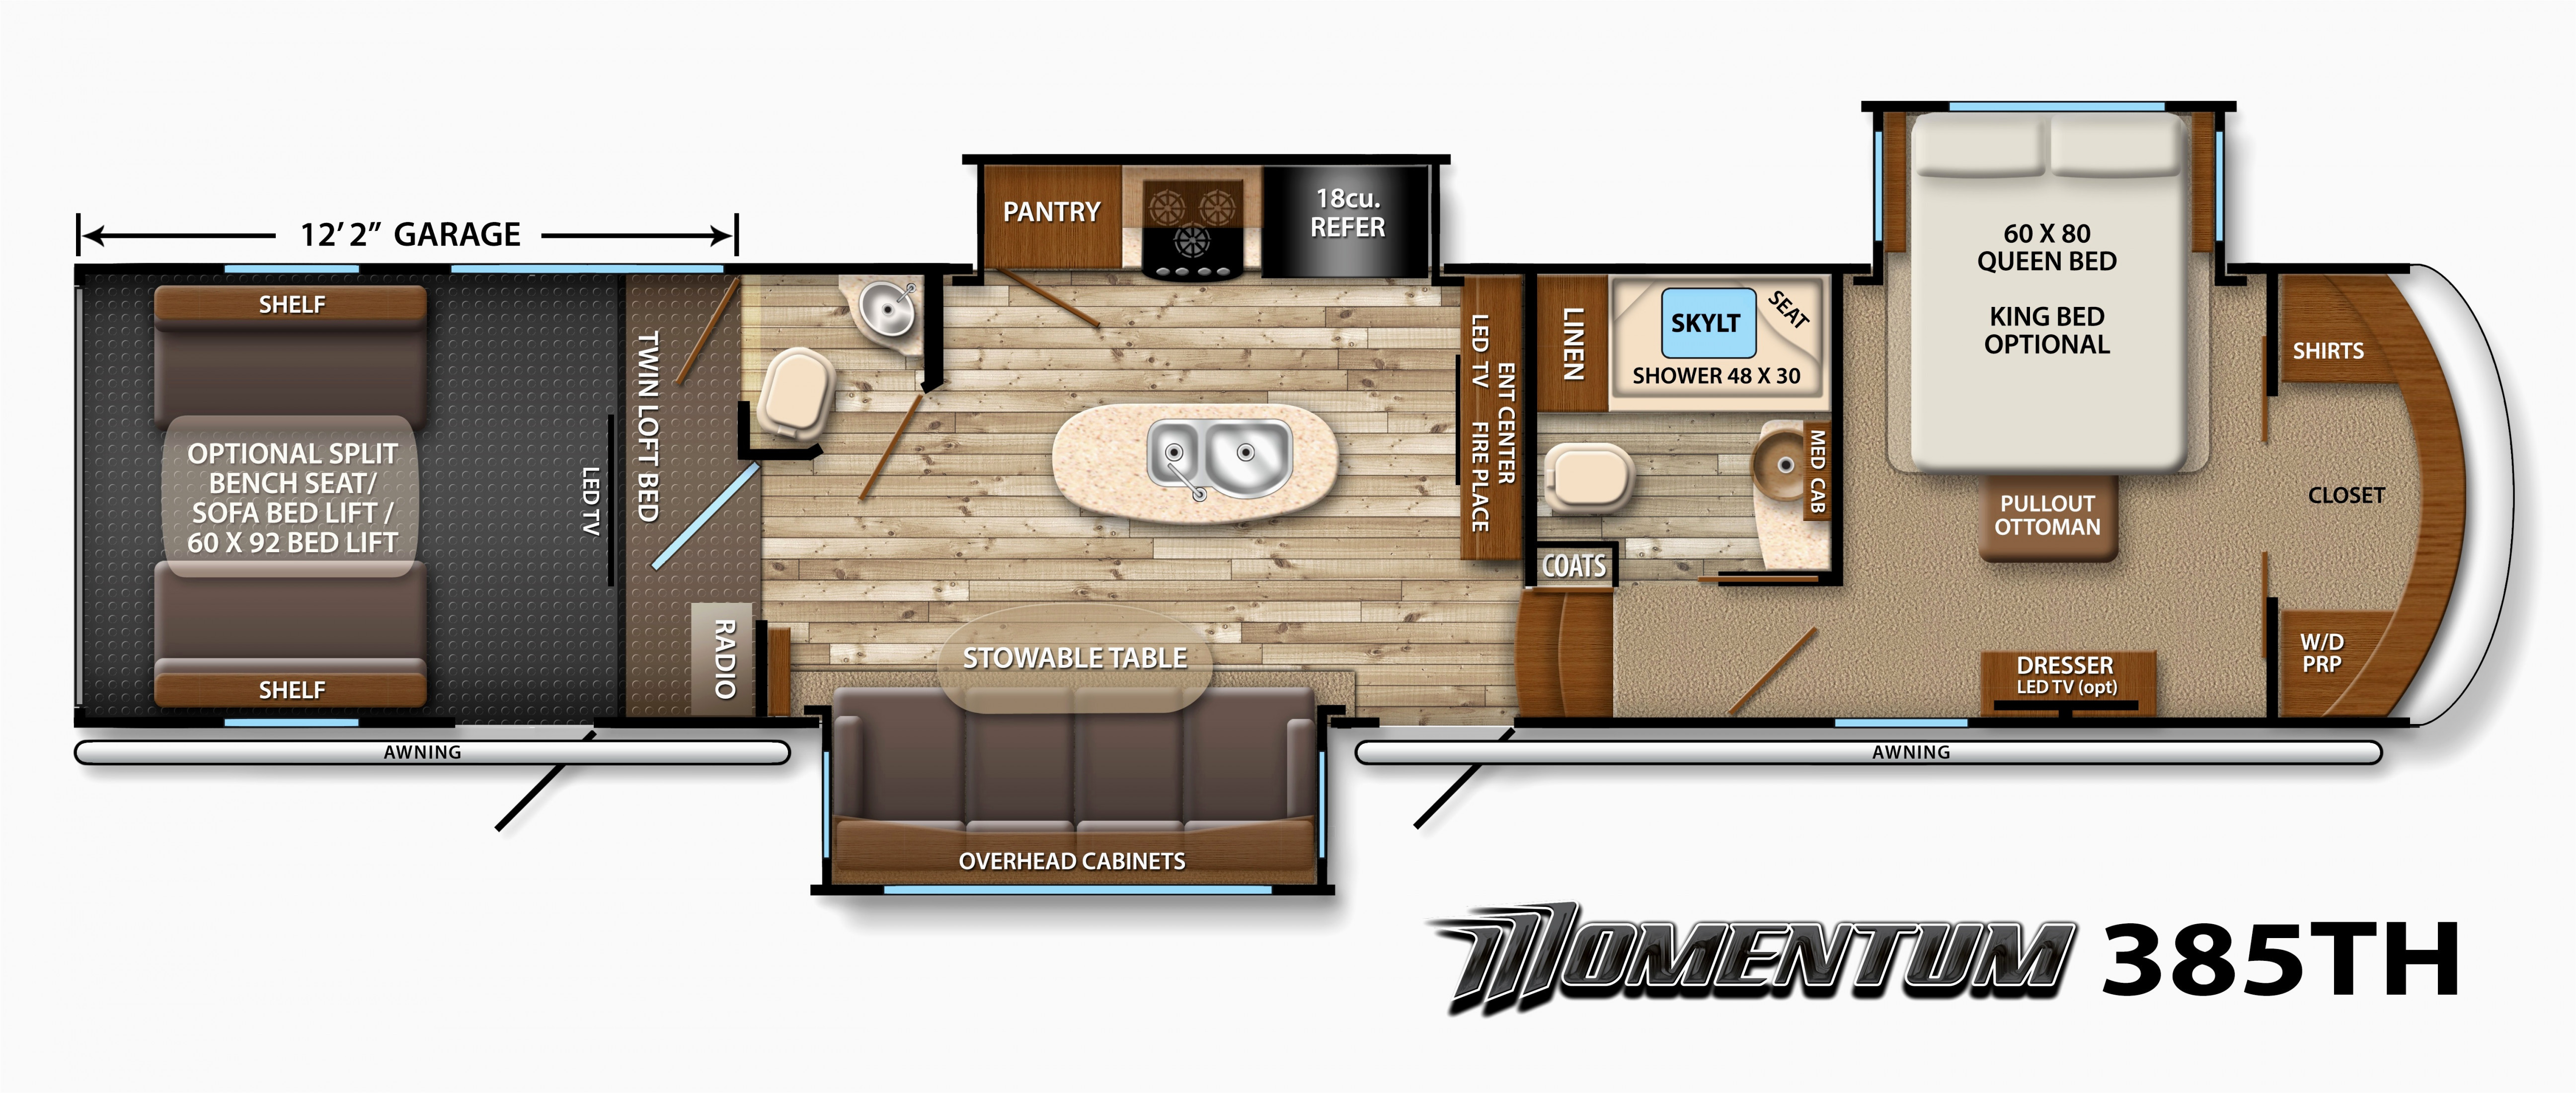 Best ideas about 2 Bedroom 5Th Wheel Floor Plans . Save or Pin Two Bedroom Fifth Wheel Floor Plans • 2018 House Plans Now.